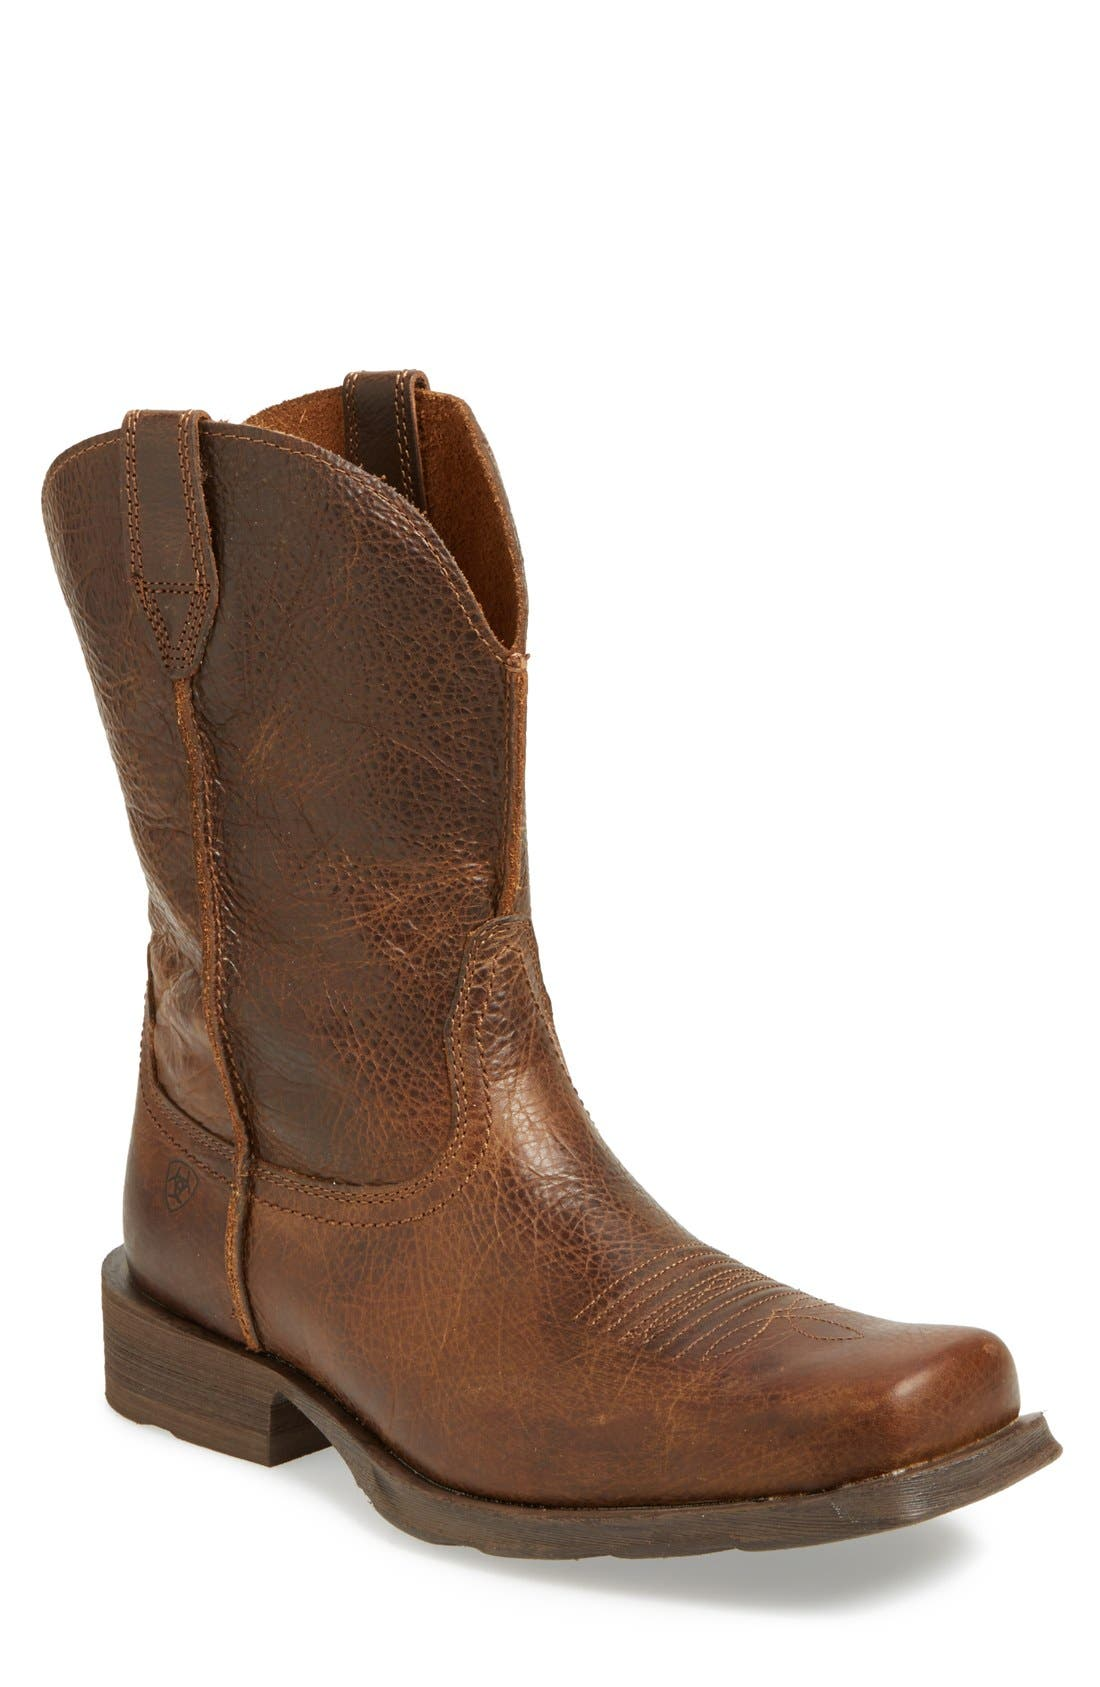 'Rambler' Square Toe Leather Cowboy Boot,                         Main,                         color, BROWN